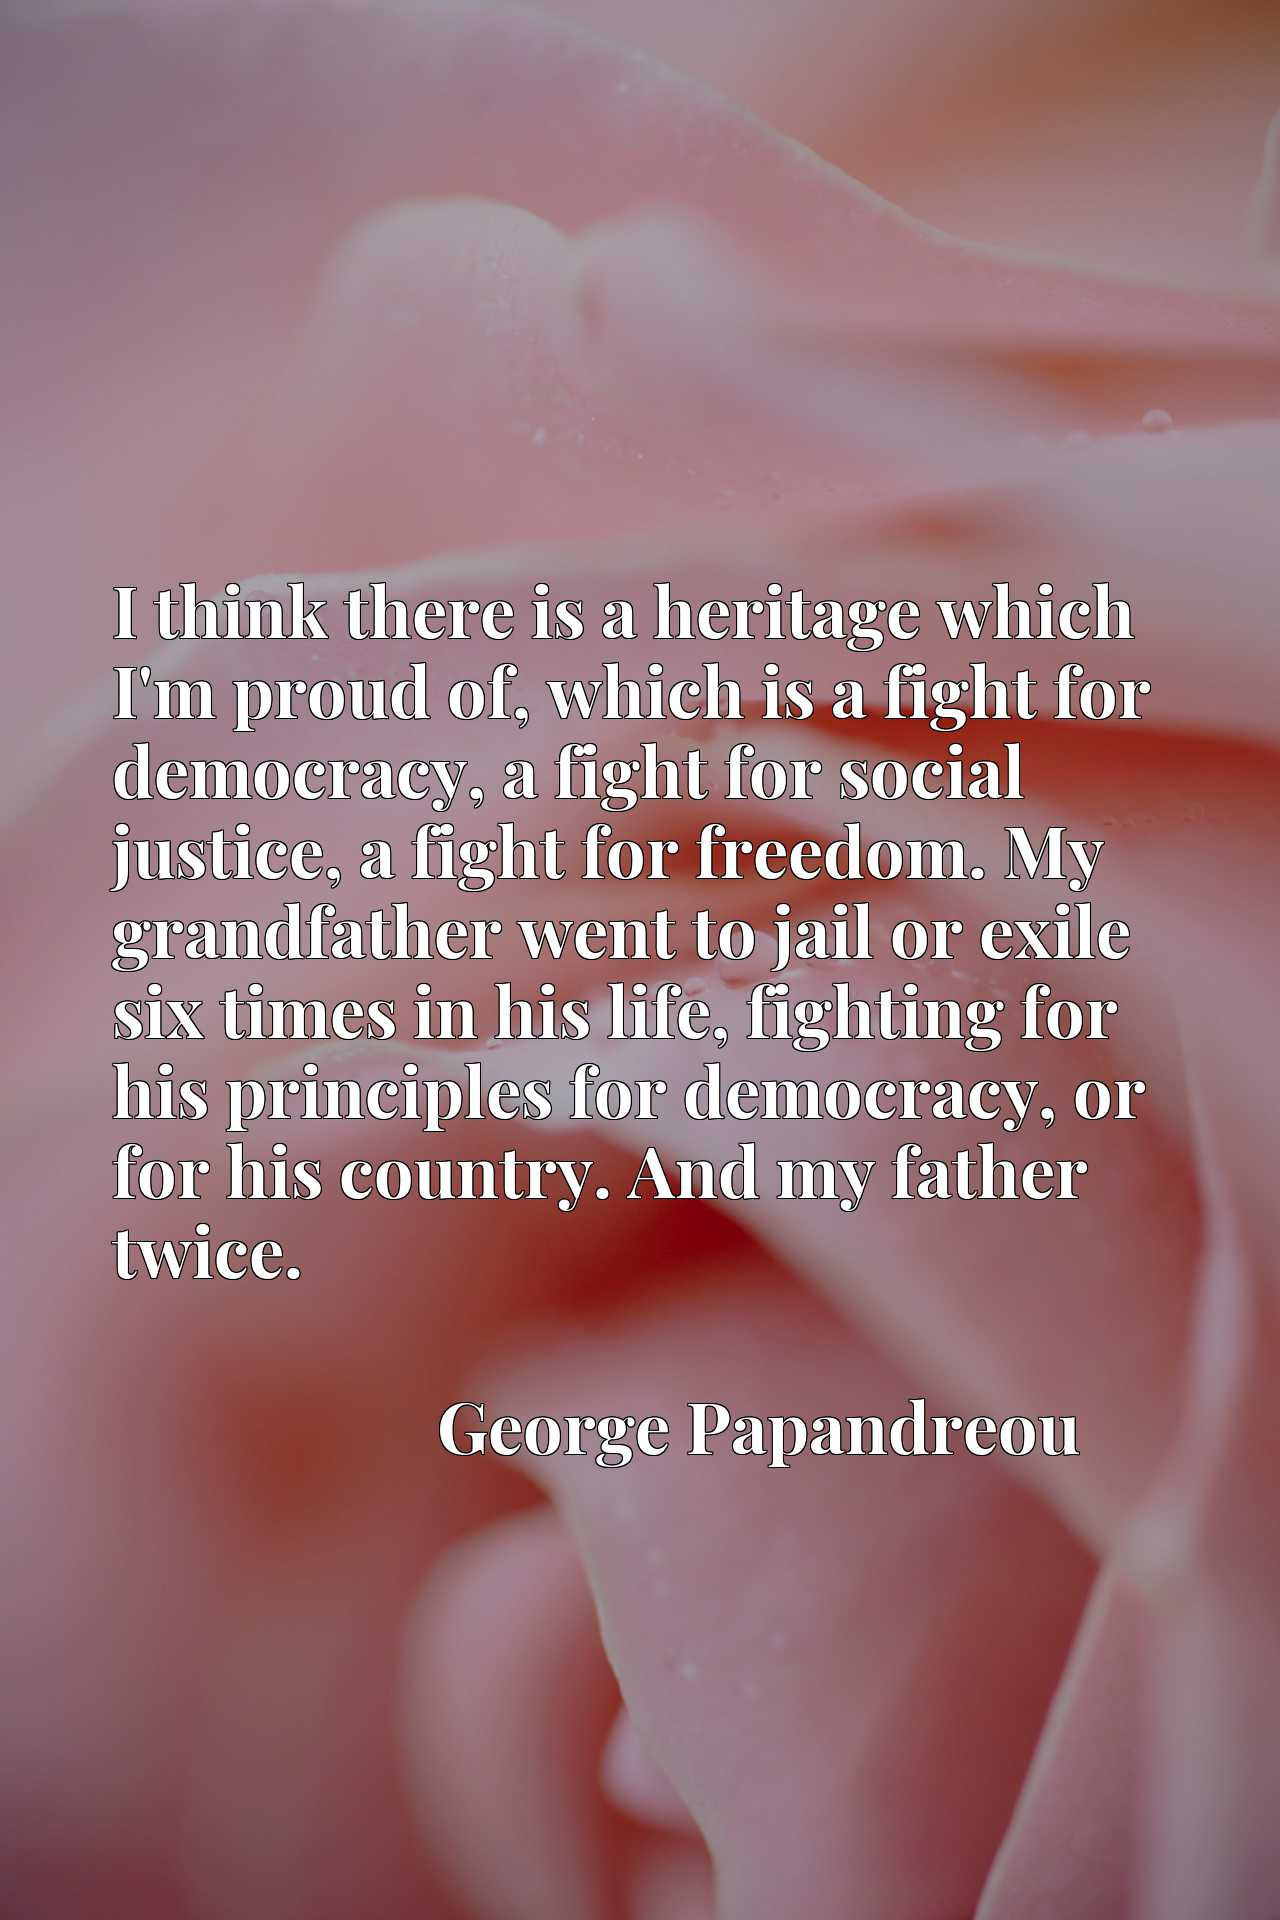 I think there is a heritage which I'm proud of, which is a fight for democracy, a fight for social justice, a fight for freedom. My grandfather went to jail or exile six times in his life, fighting for his principles for democracy, or for his country. And my father twice.